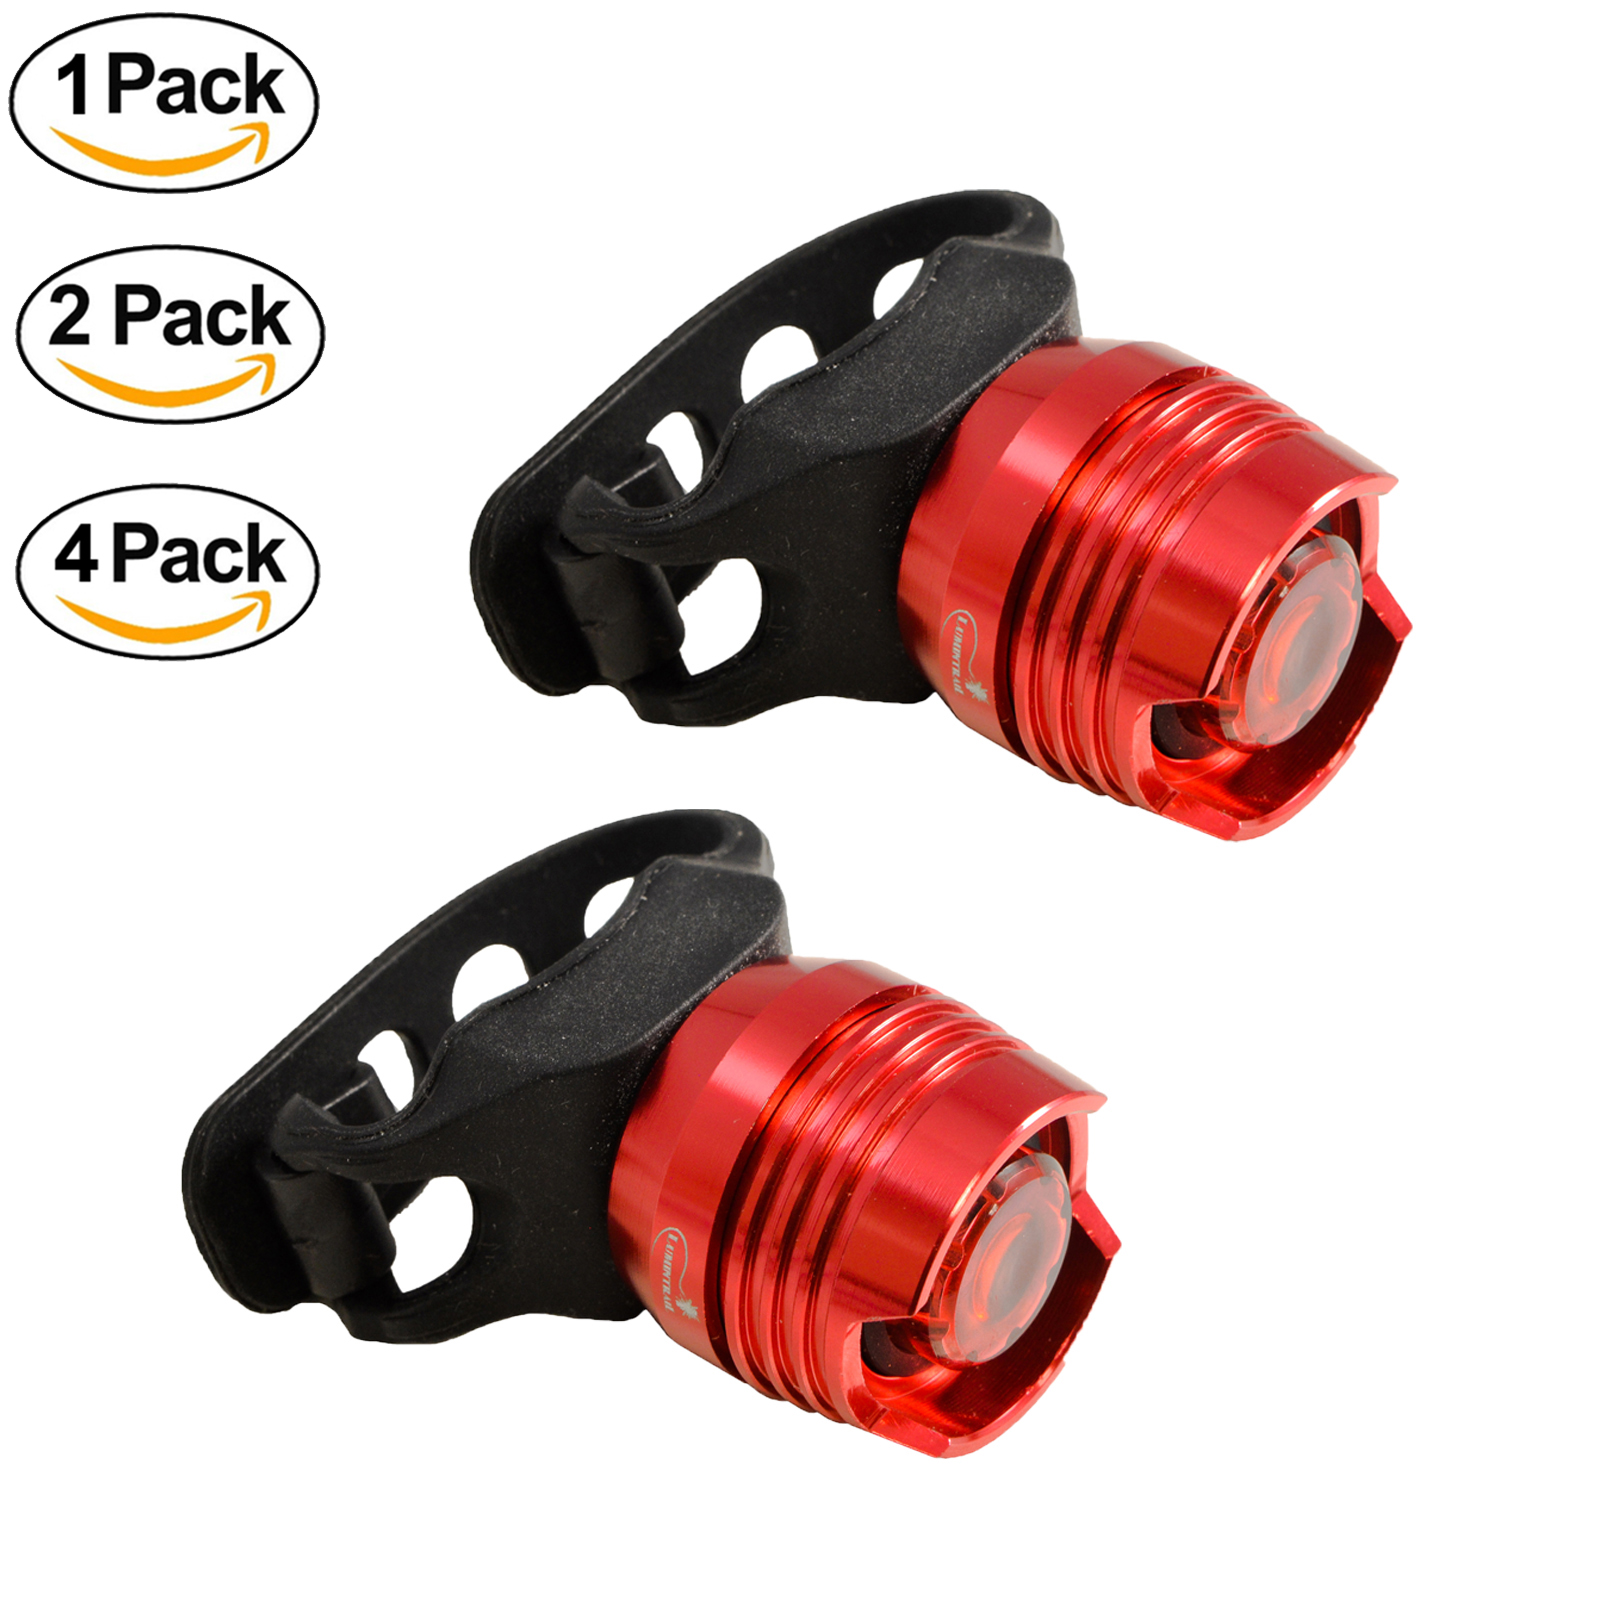 Lumintrail LTC-15 LED Bike Tail Light Waterproof High Intensity Cycling Rear Safety Taillight Batteries Included (2 Pack)